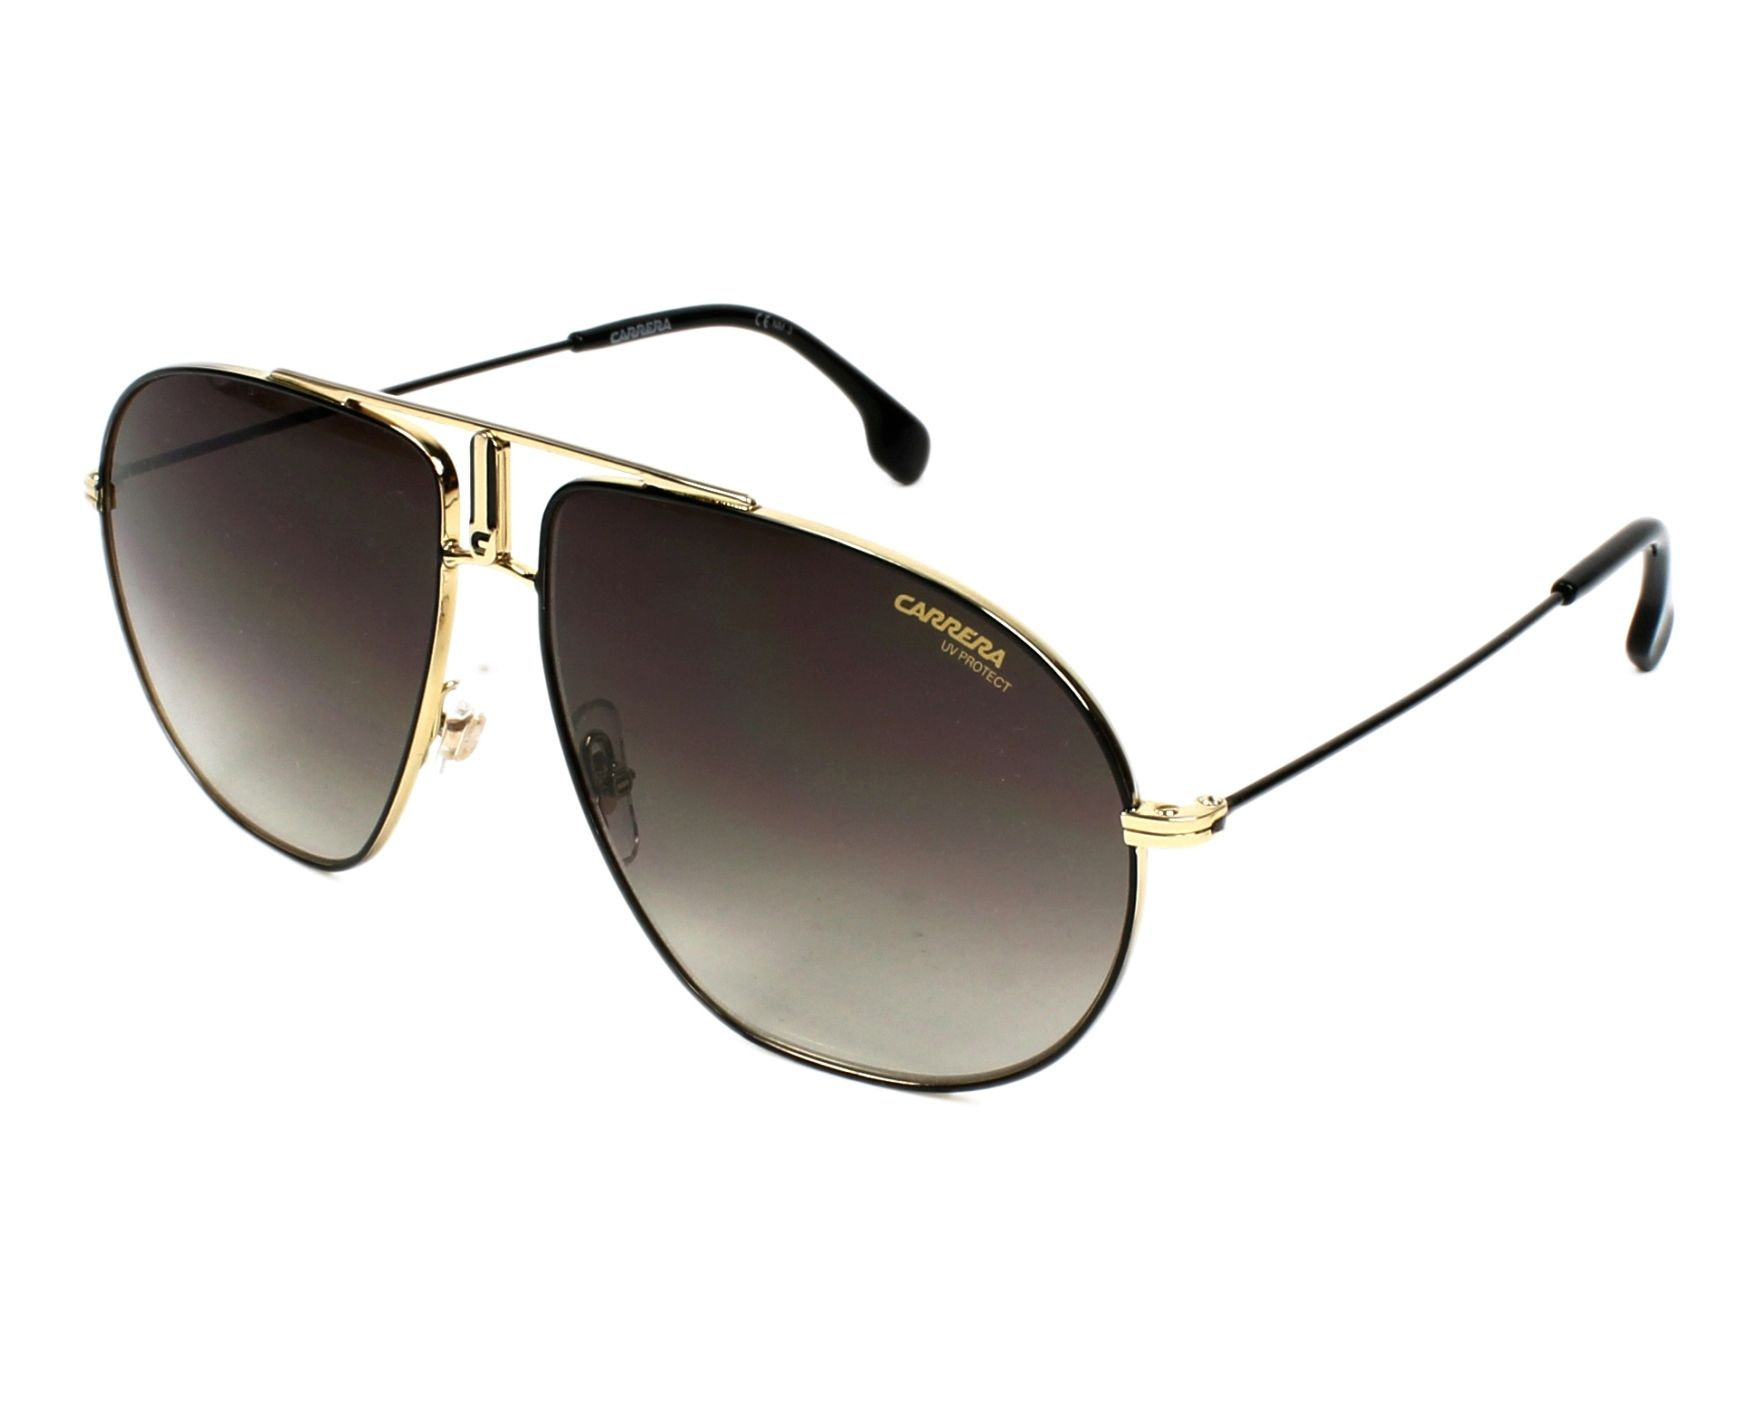 Buy Carrera Sunglasses BOUND 2M2/HA Online - Visionet